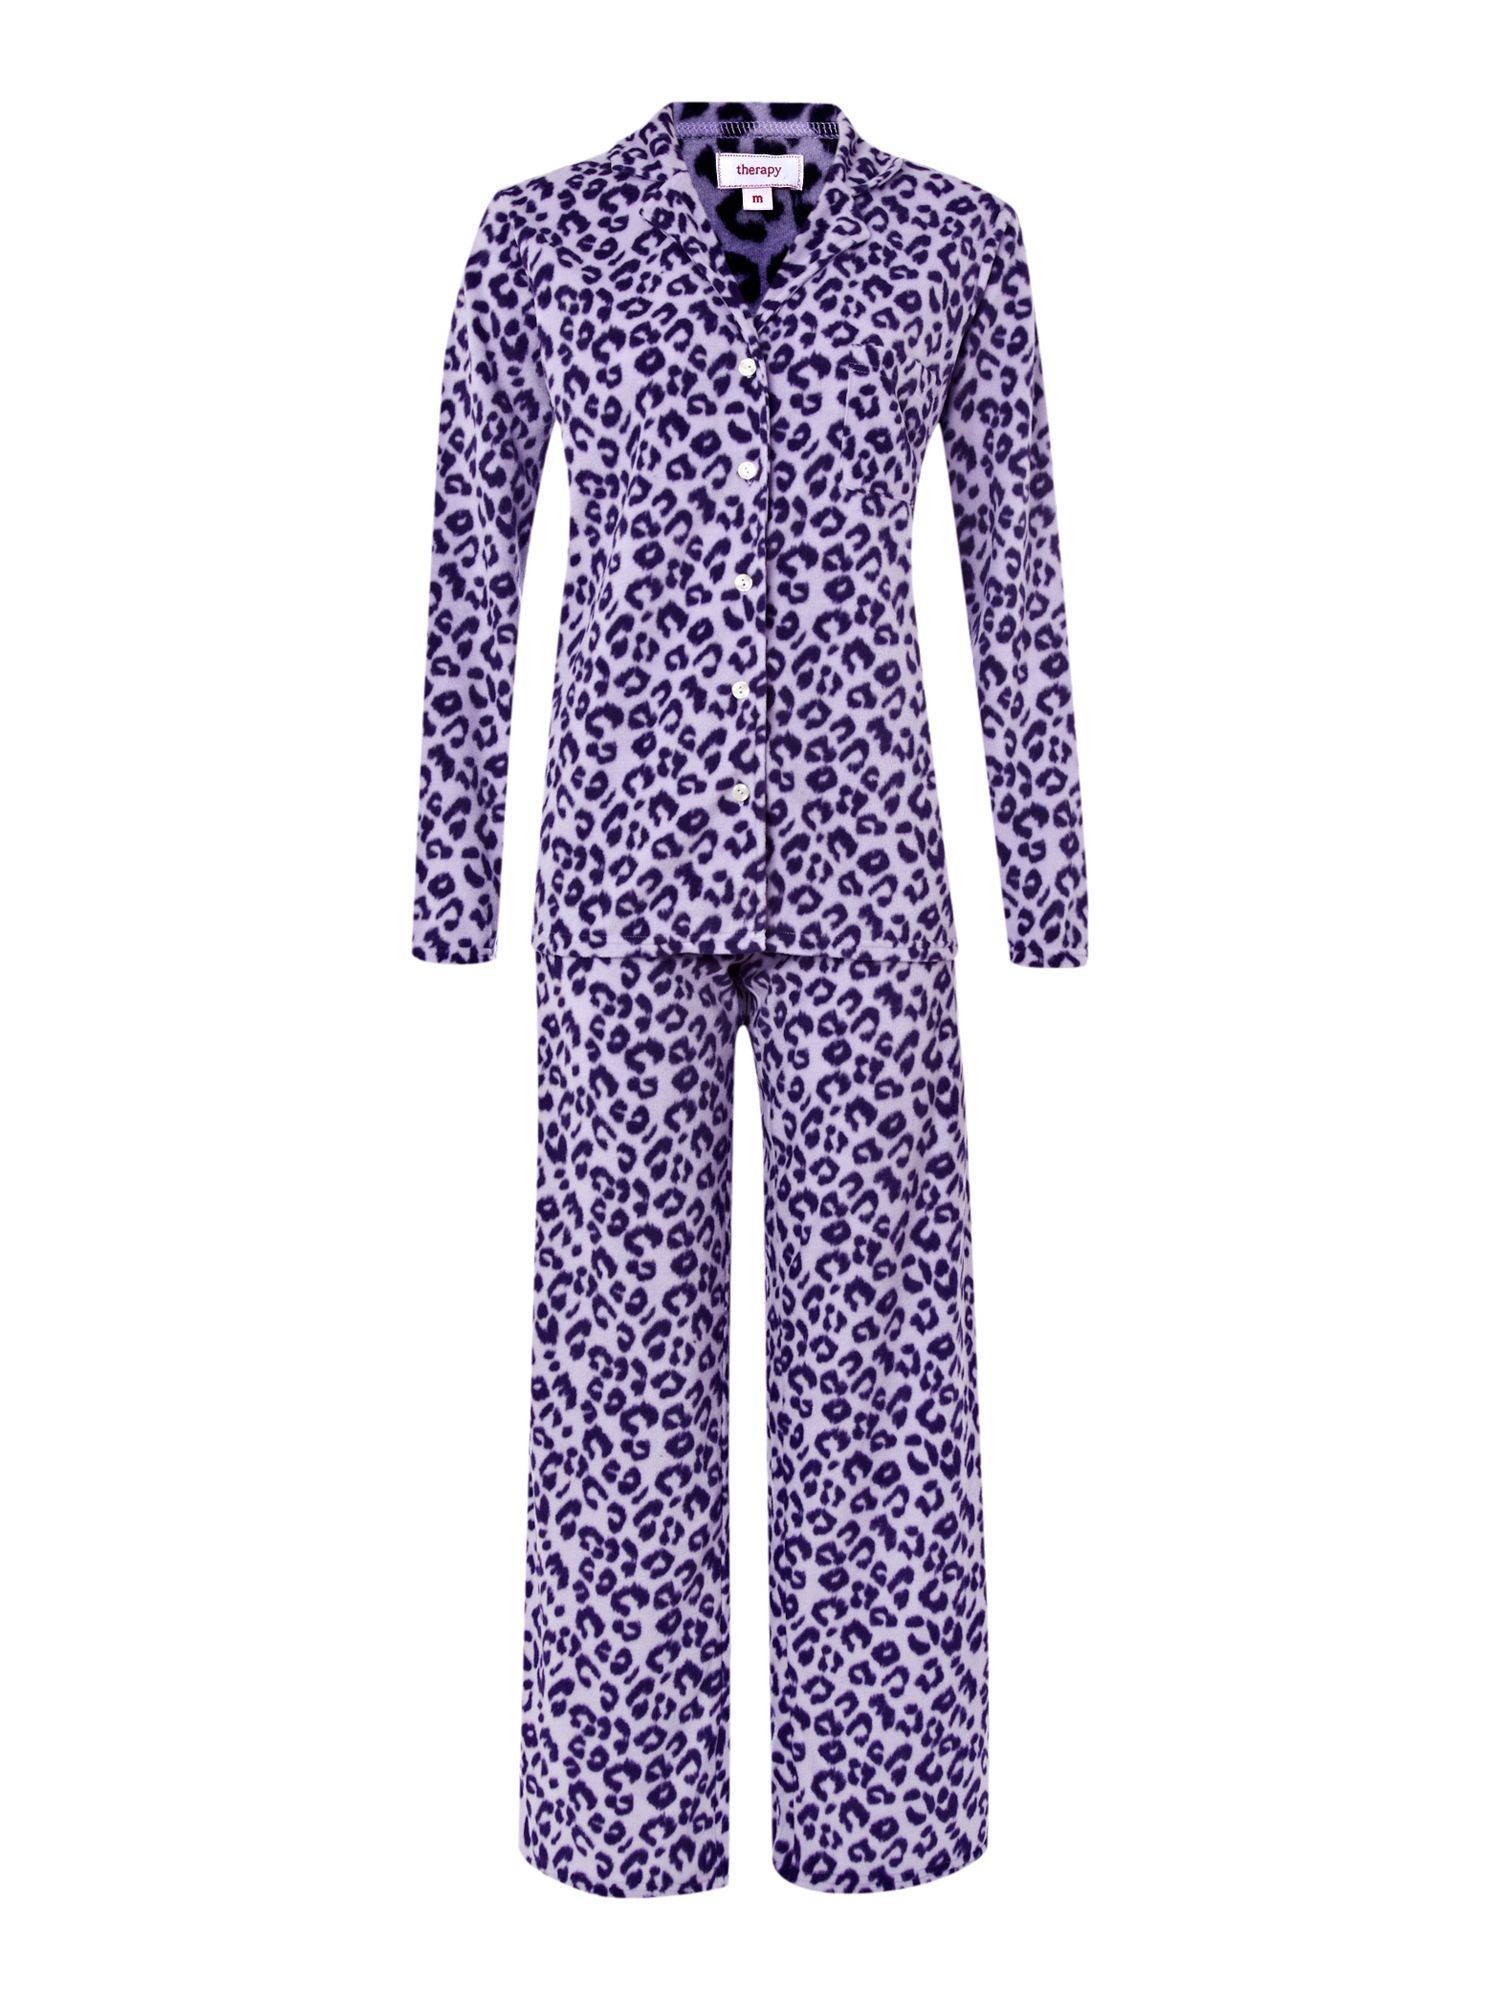 Leopard print fleece pj set